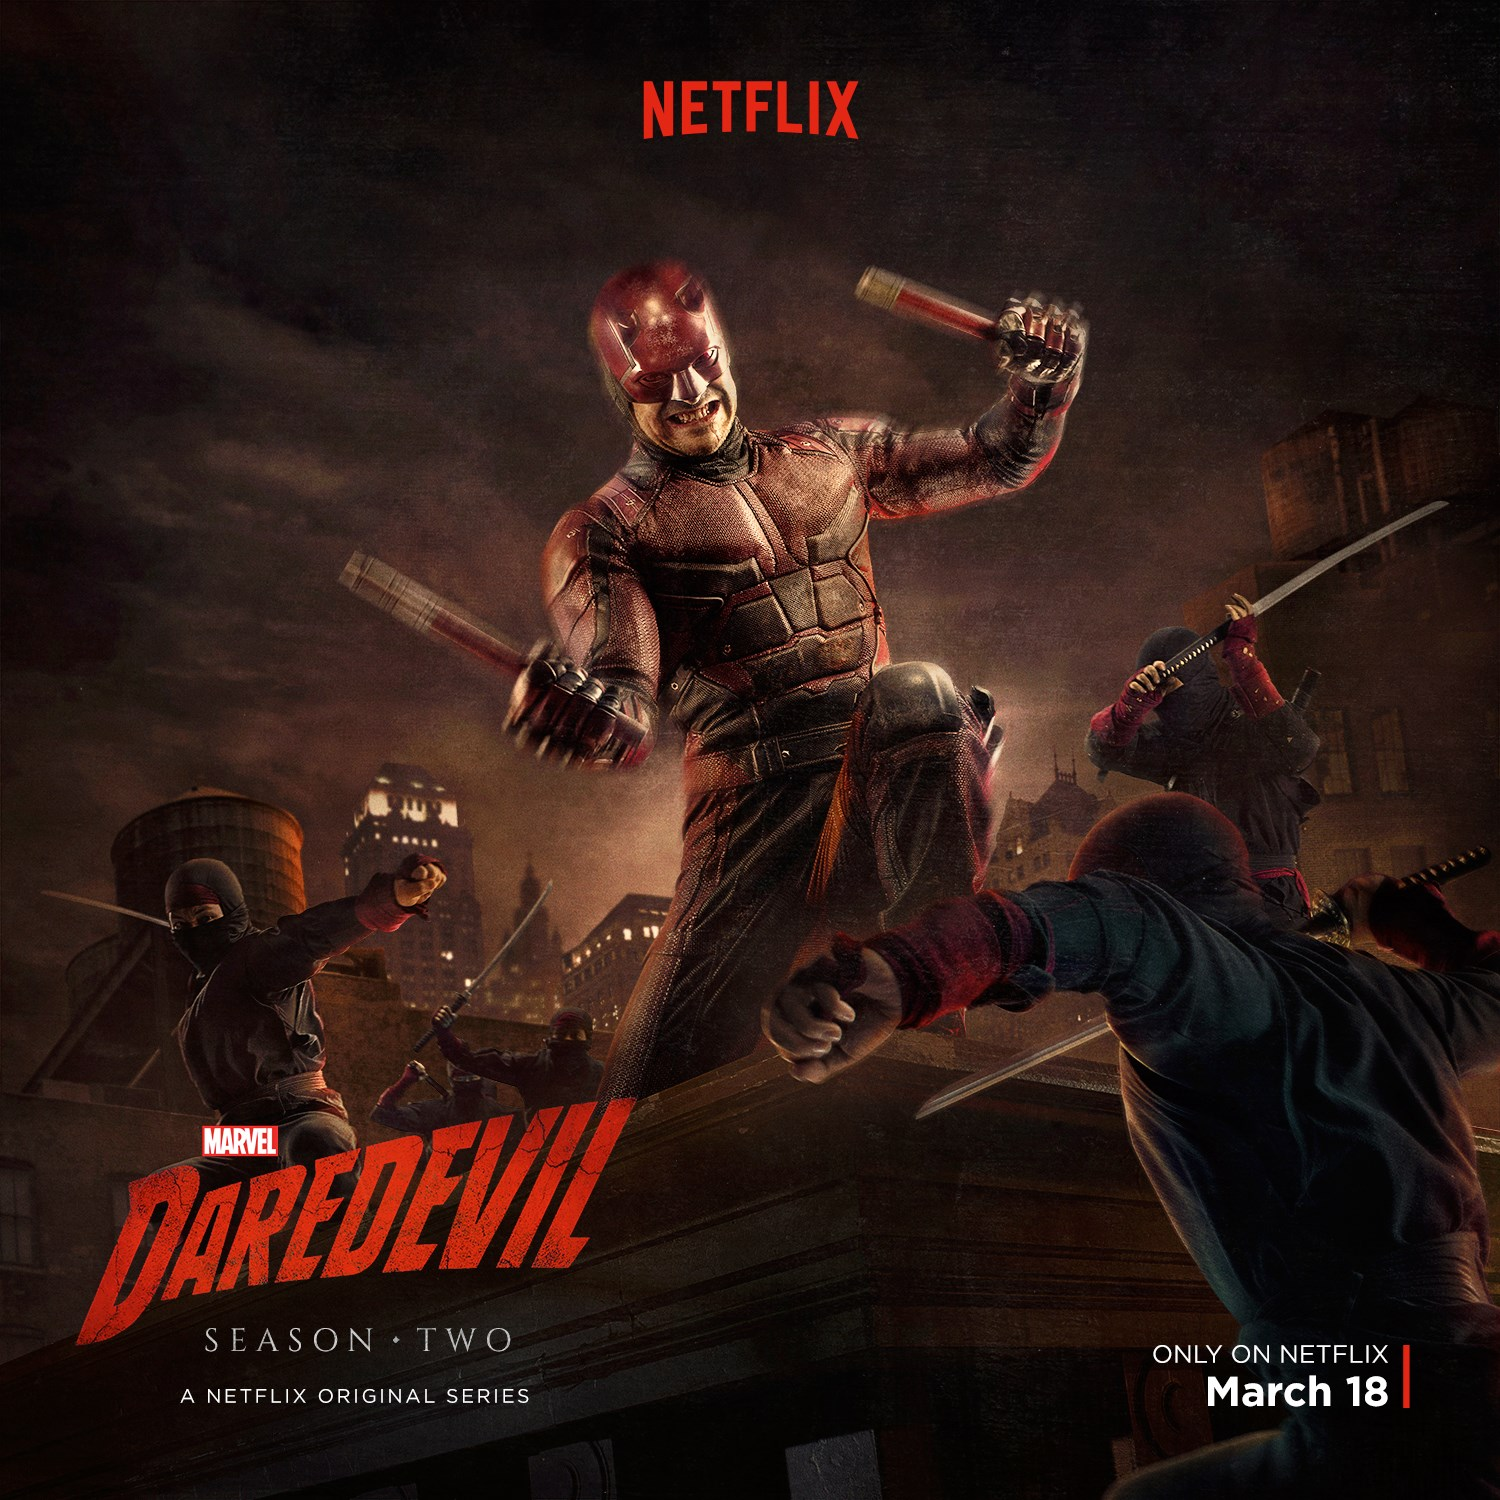 daredevil season 2 poster costume